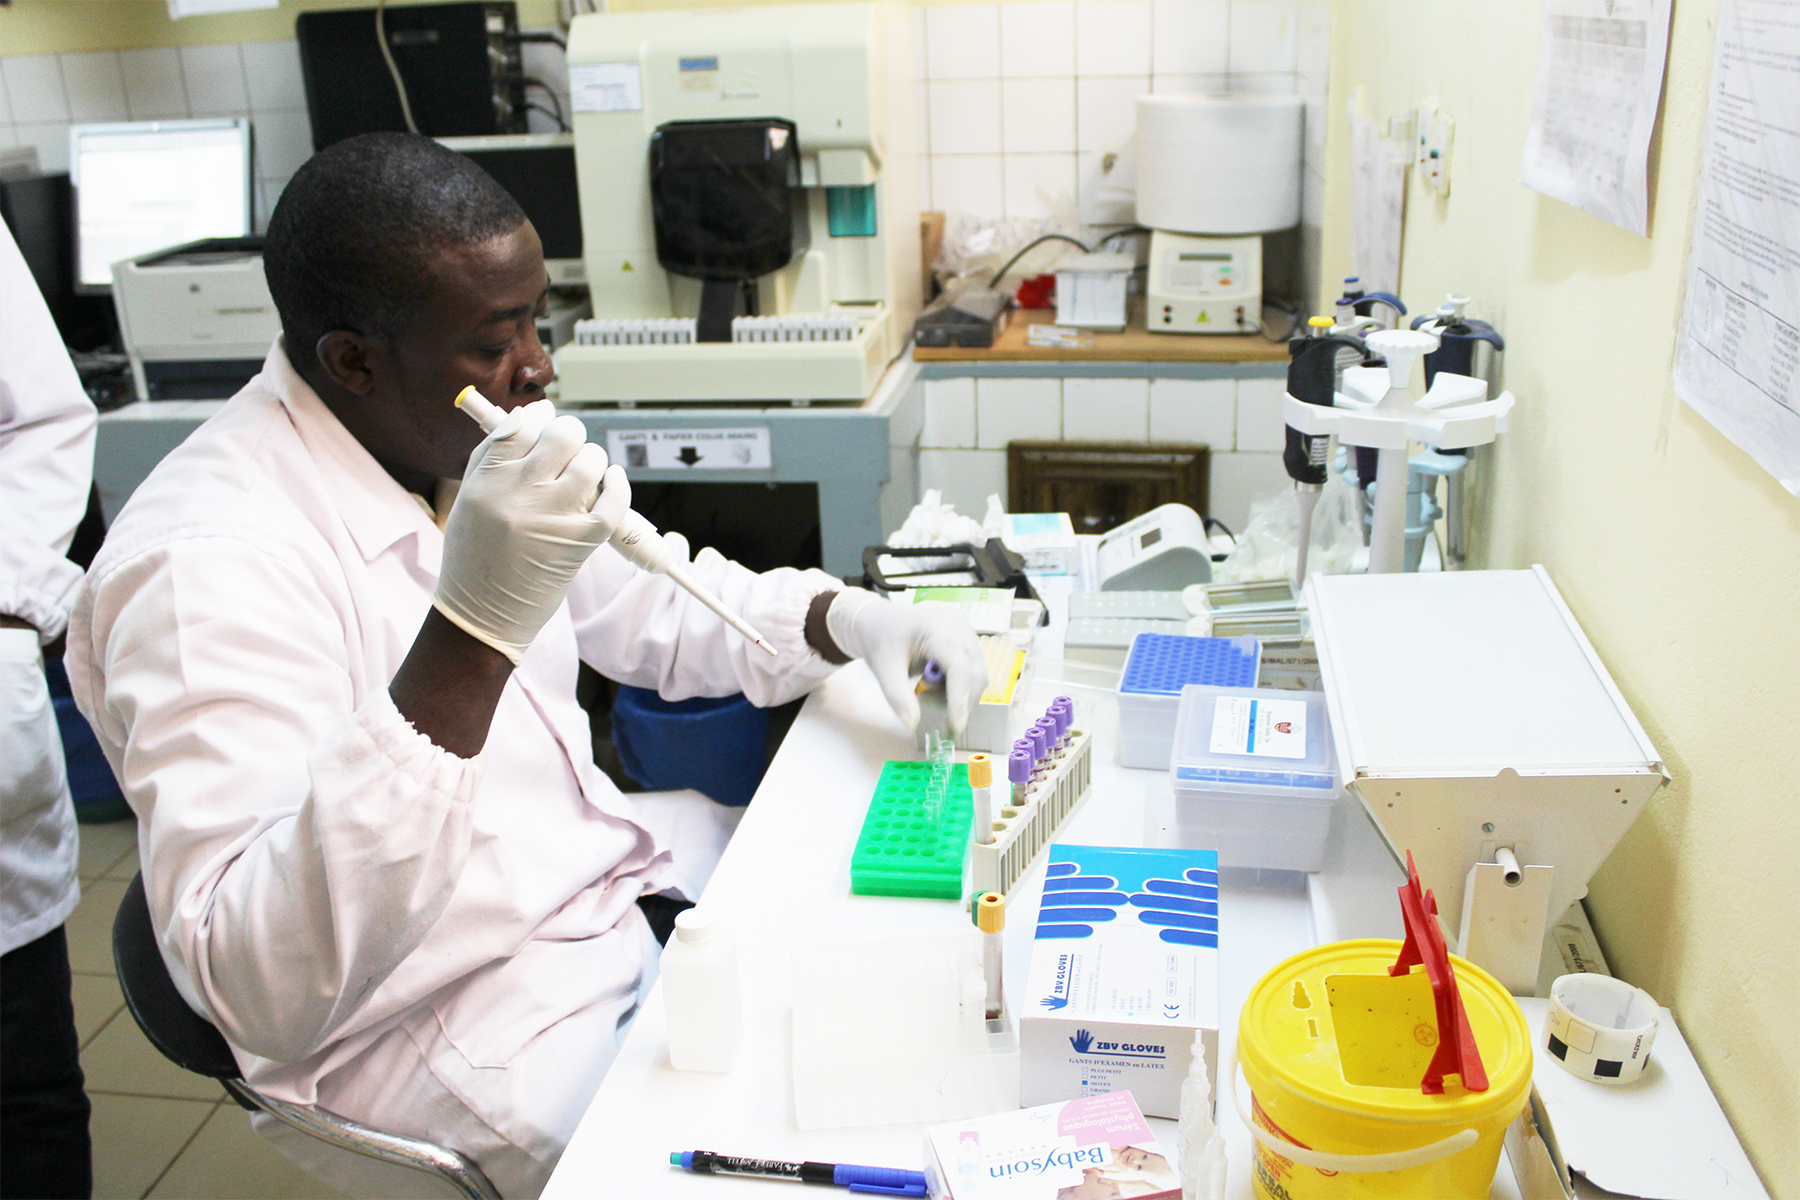 Malaria vaccine becomes first to achieve WHO-specified 75% efficacy goal |  University of Oxford